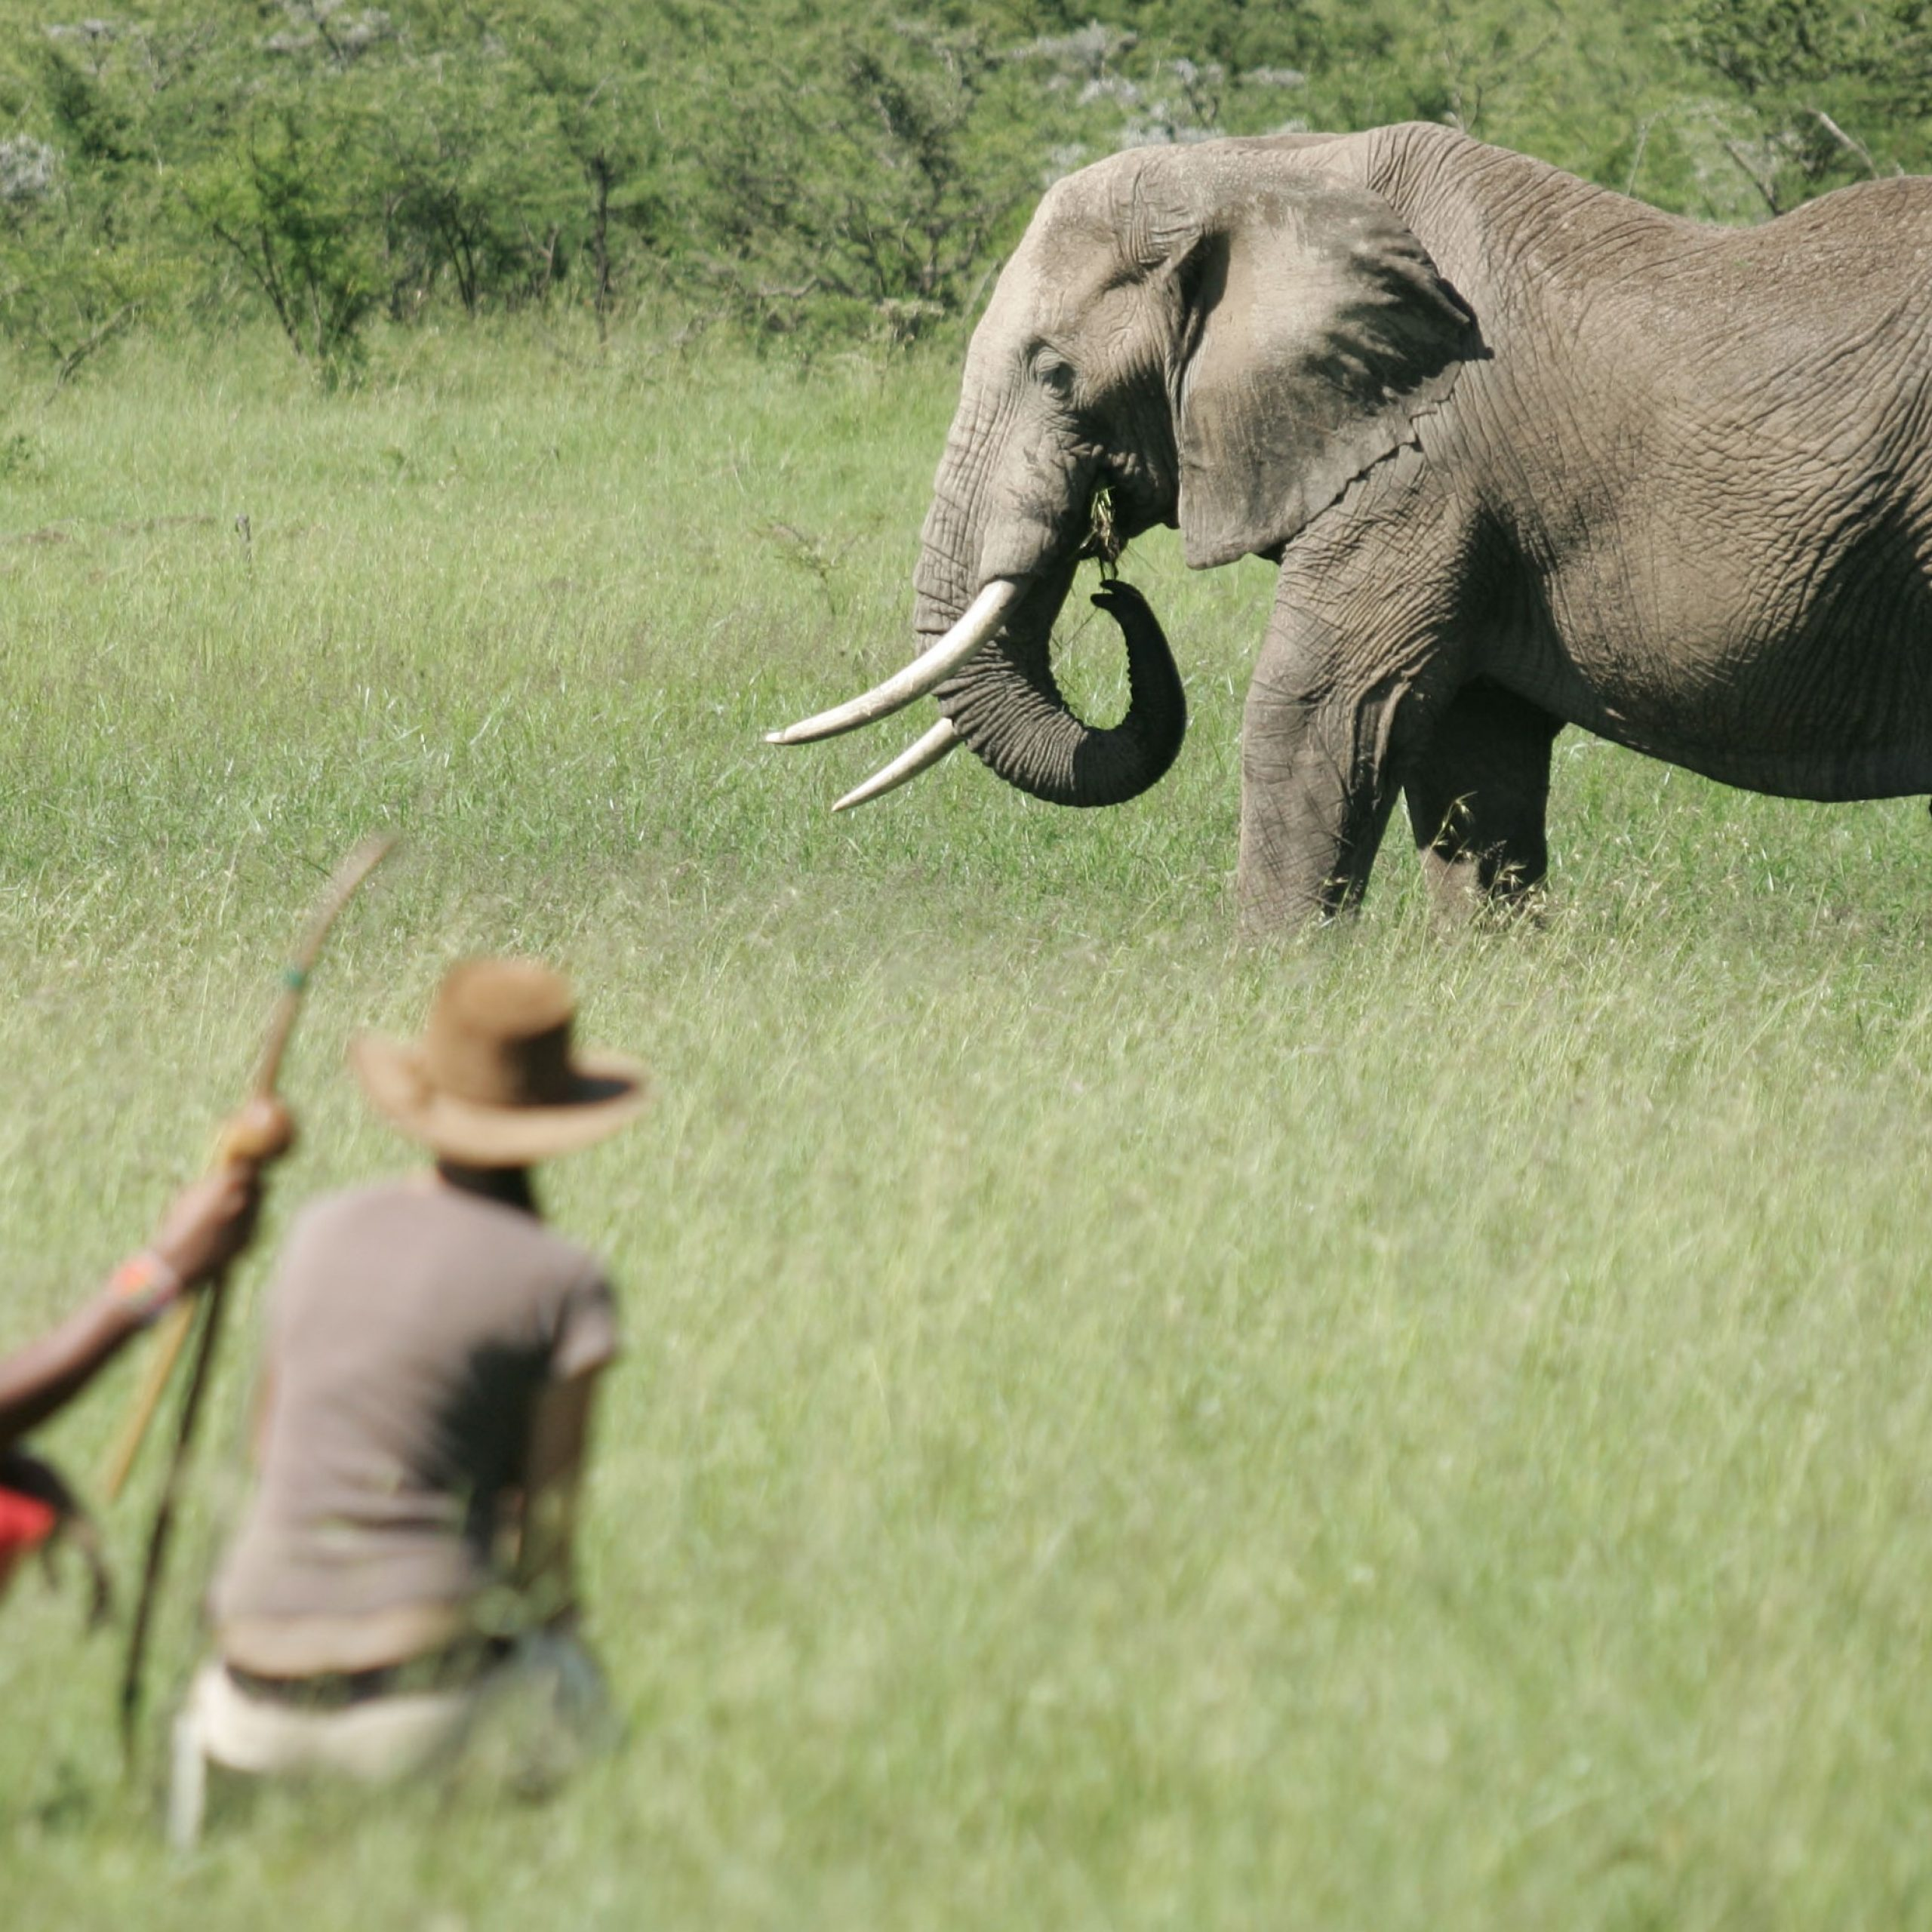 Day 10: Visits to Ol Chorro Conservancy and Mara Elephant Project